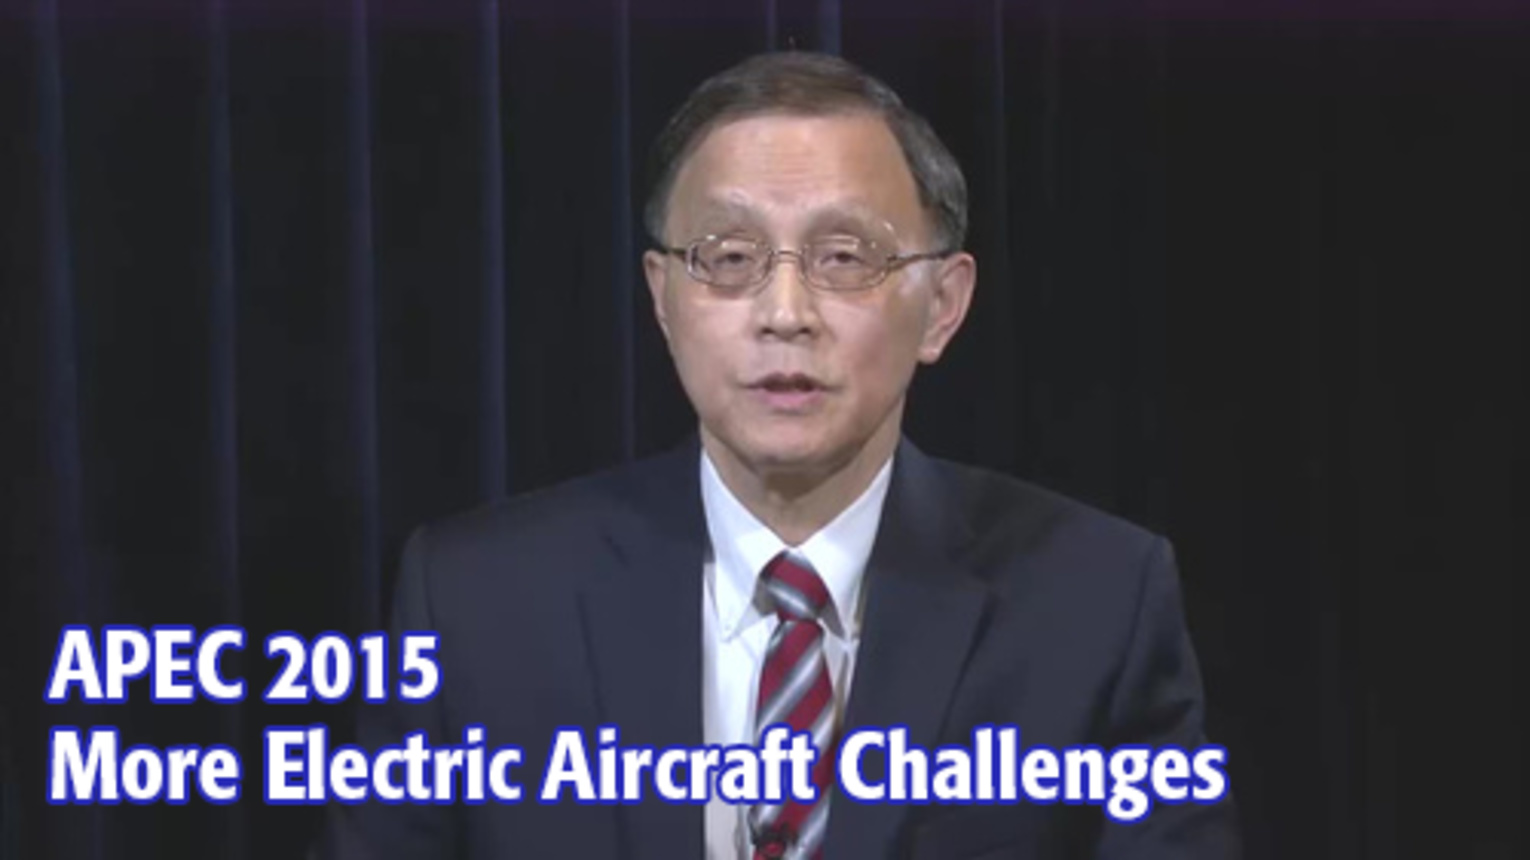 APEC 2015: KeyTalks - More Electric Aircraft Challenges